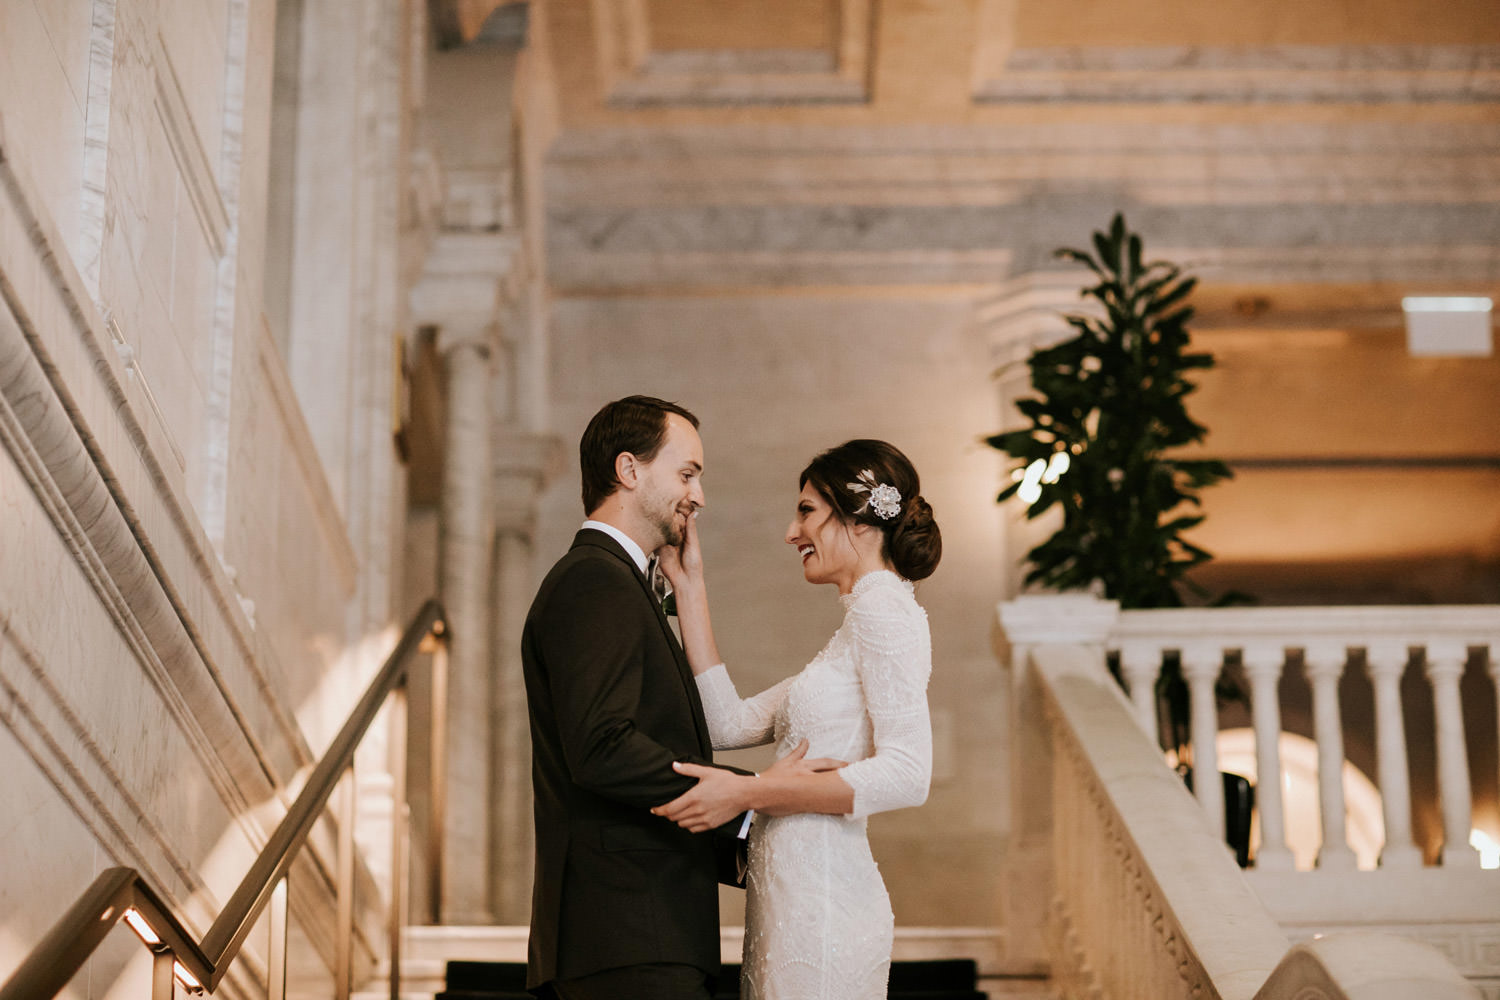 and intimate image of the bride touching the face of the groom during their first look at the gray hotel in chicago